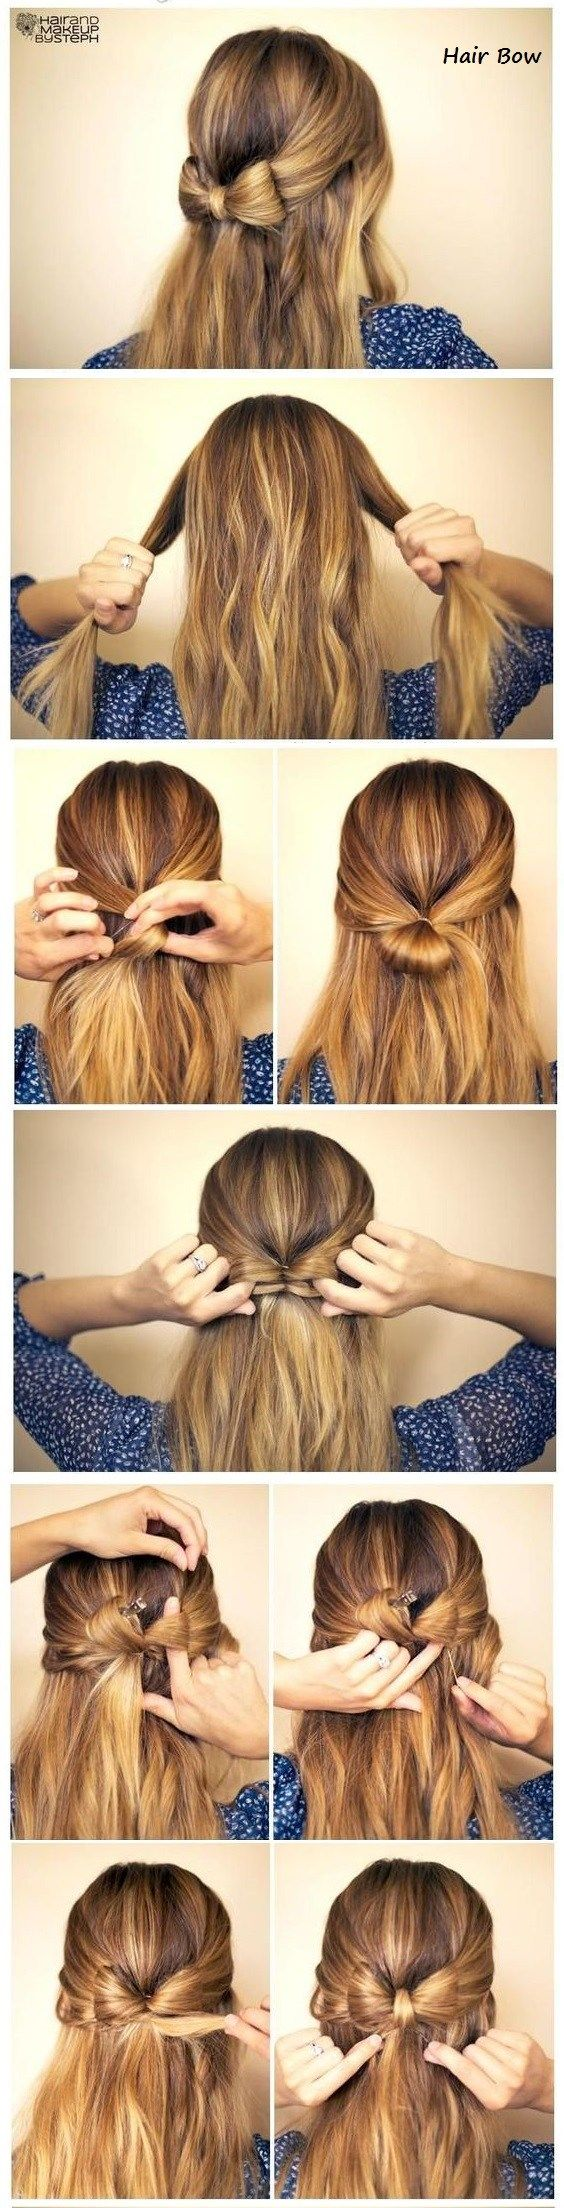 15 Easy Prom Hairstyles For Long Hair You Can Diy At Home Detailed Step By Step Tutorial Sun Kissed Violet Hair Styles Long Hair Styles Hair Makeup